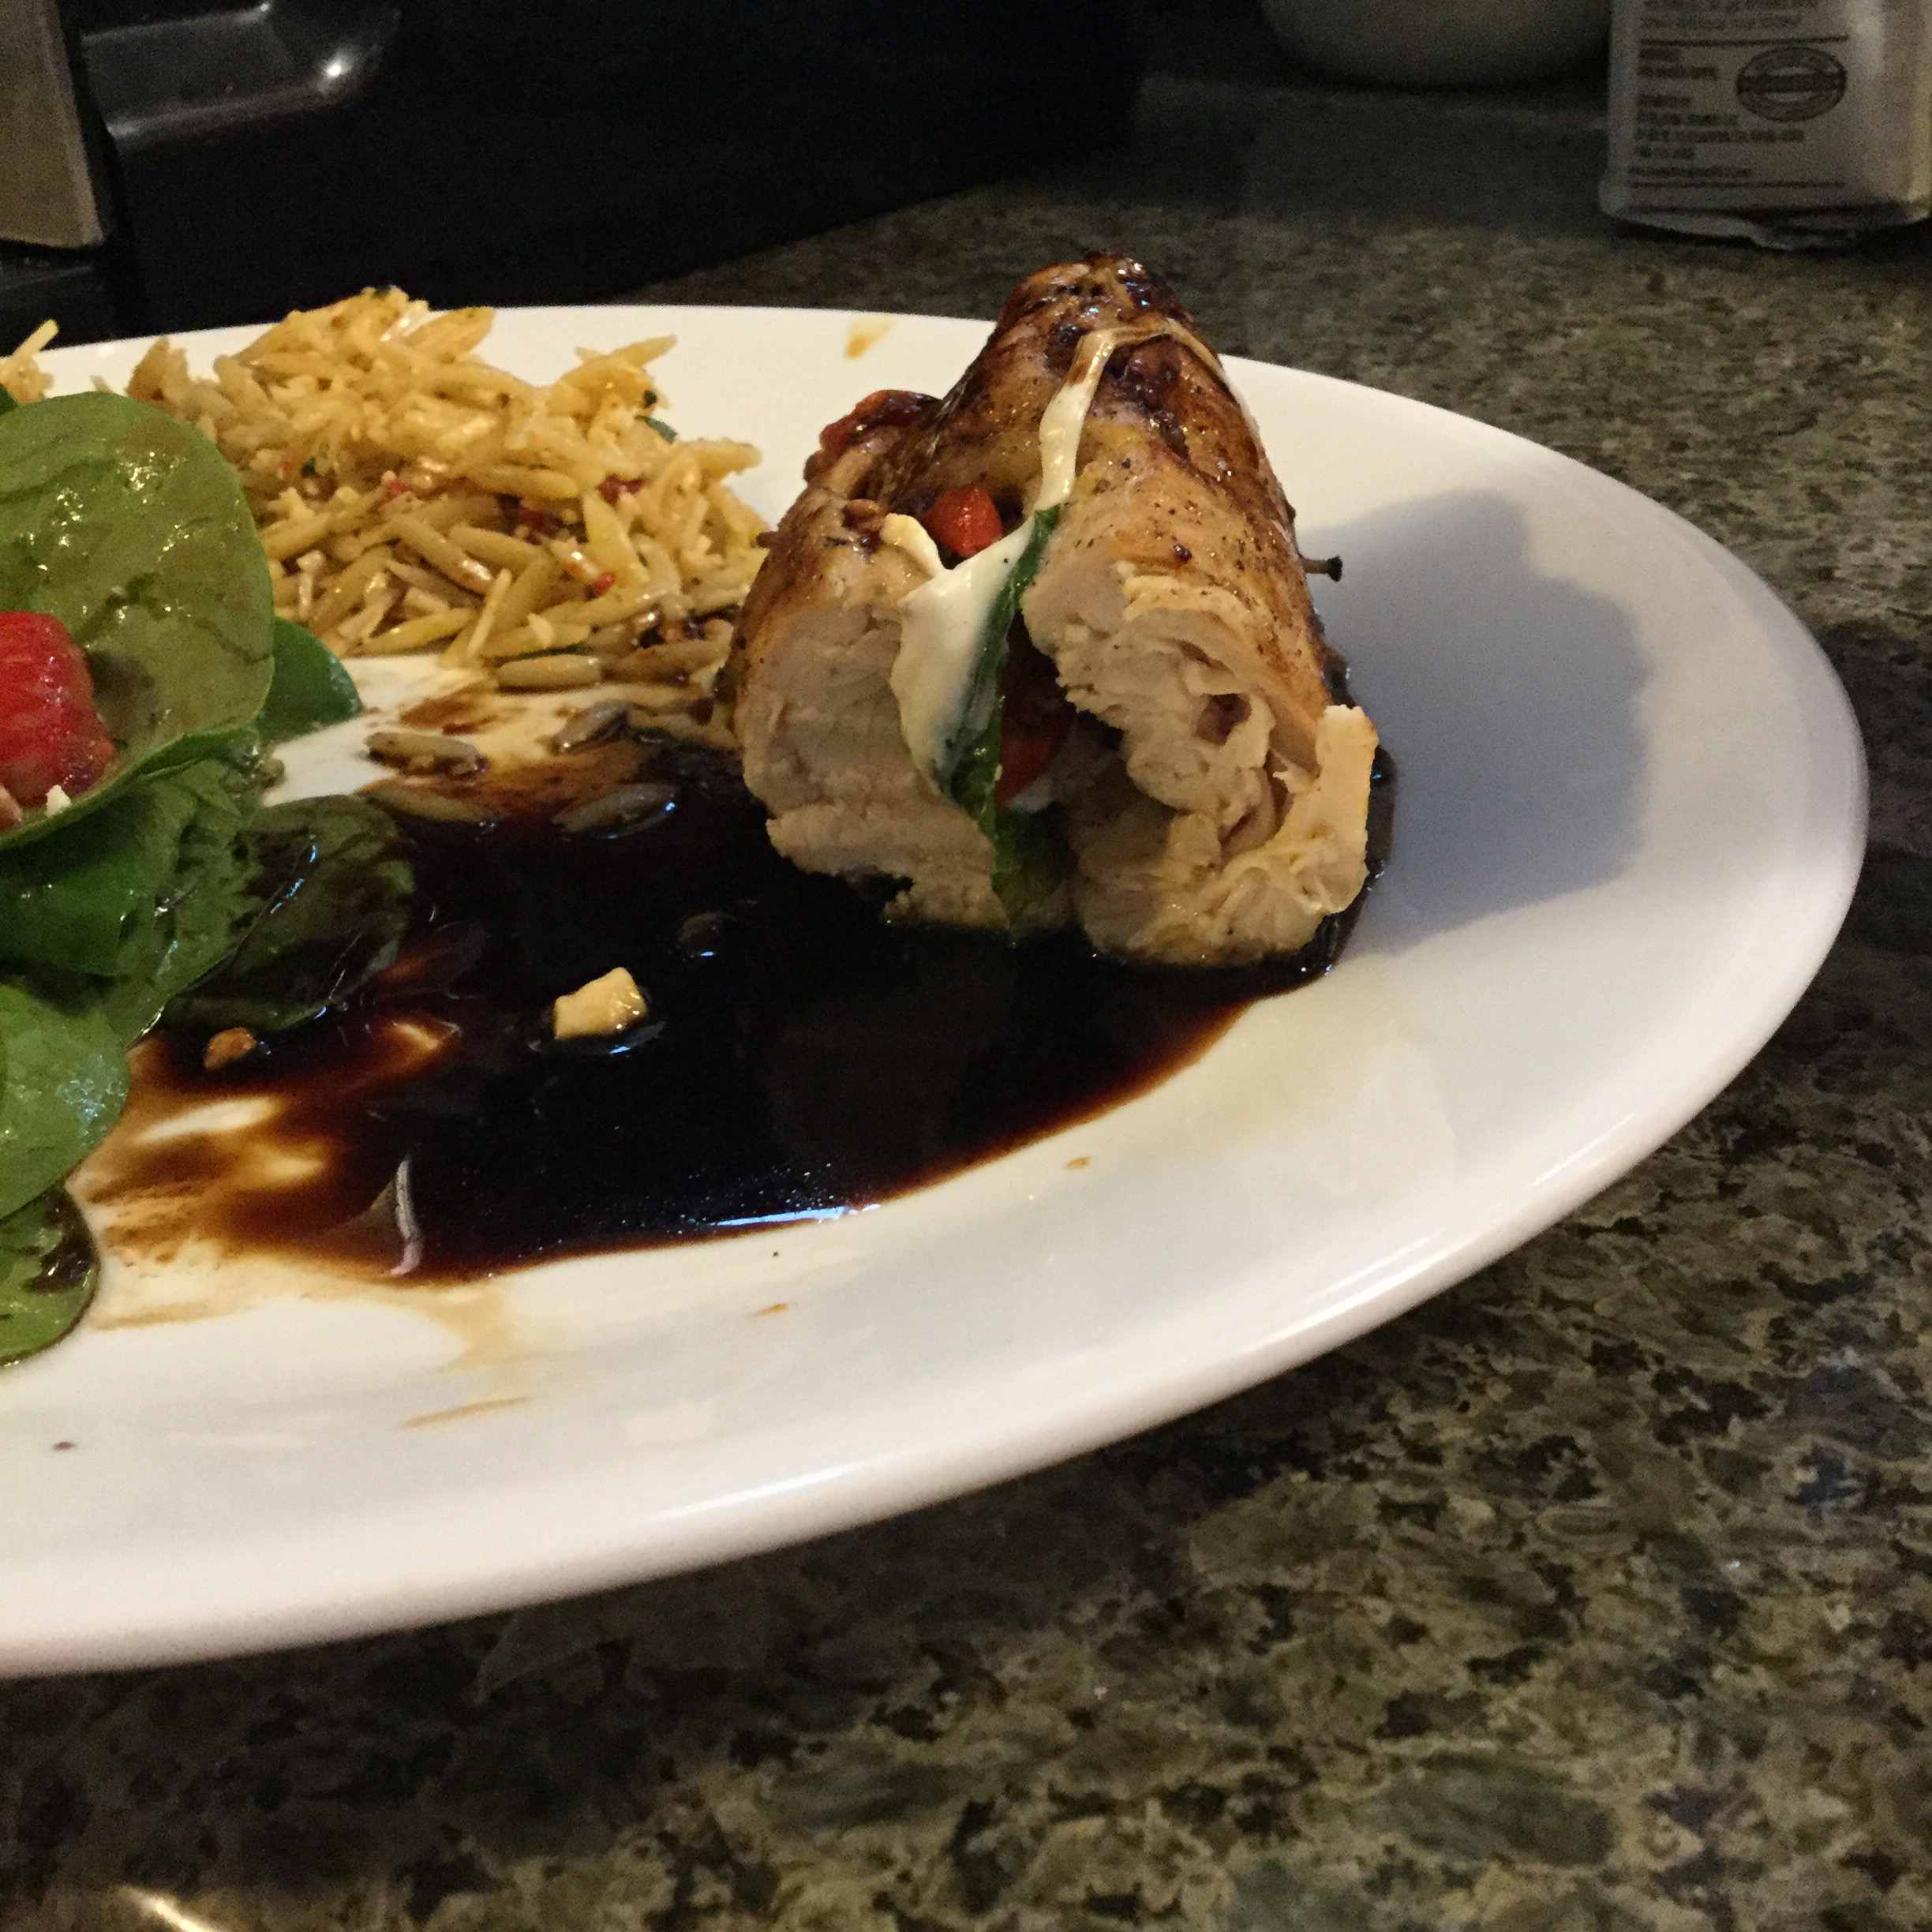 Caprese-Stuffed Chicken Breast with Balsamic Reduction janefee